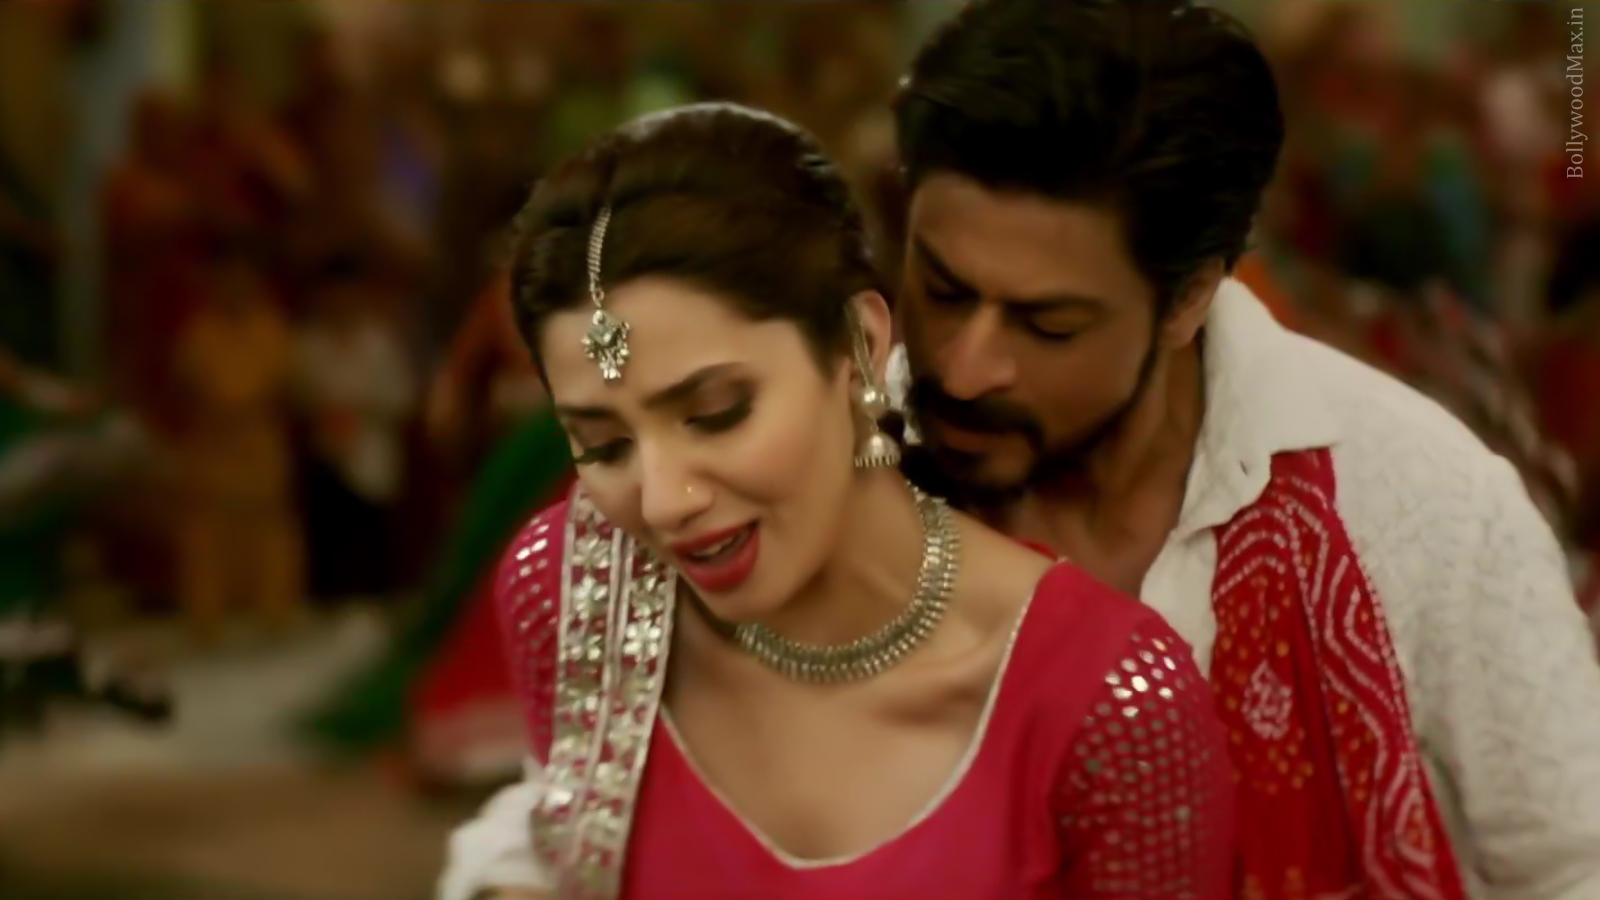 Mahira Khan - Raees - Hot Pakistani Actress Picture And Images-8584